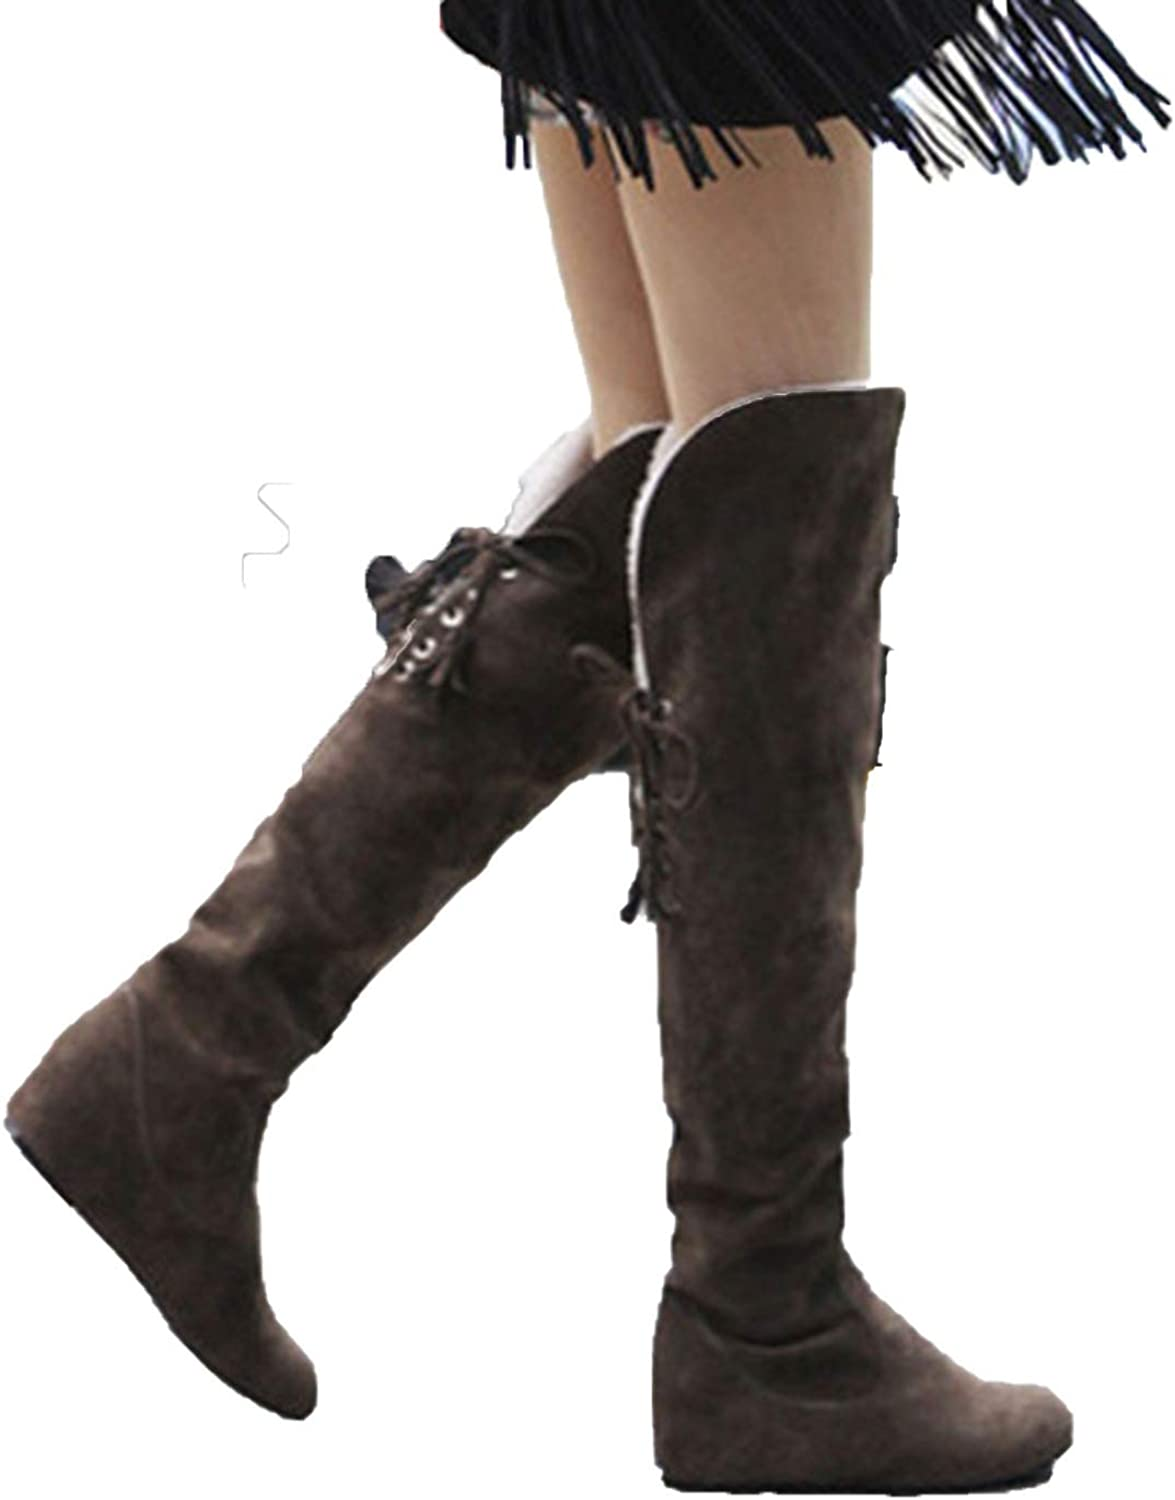 Together to create a miracle Womens Boots Faux Suede Over The Knee Flat Warm Boots Comfortable Thigh High Lace-up Winter shoes